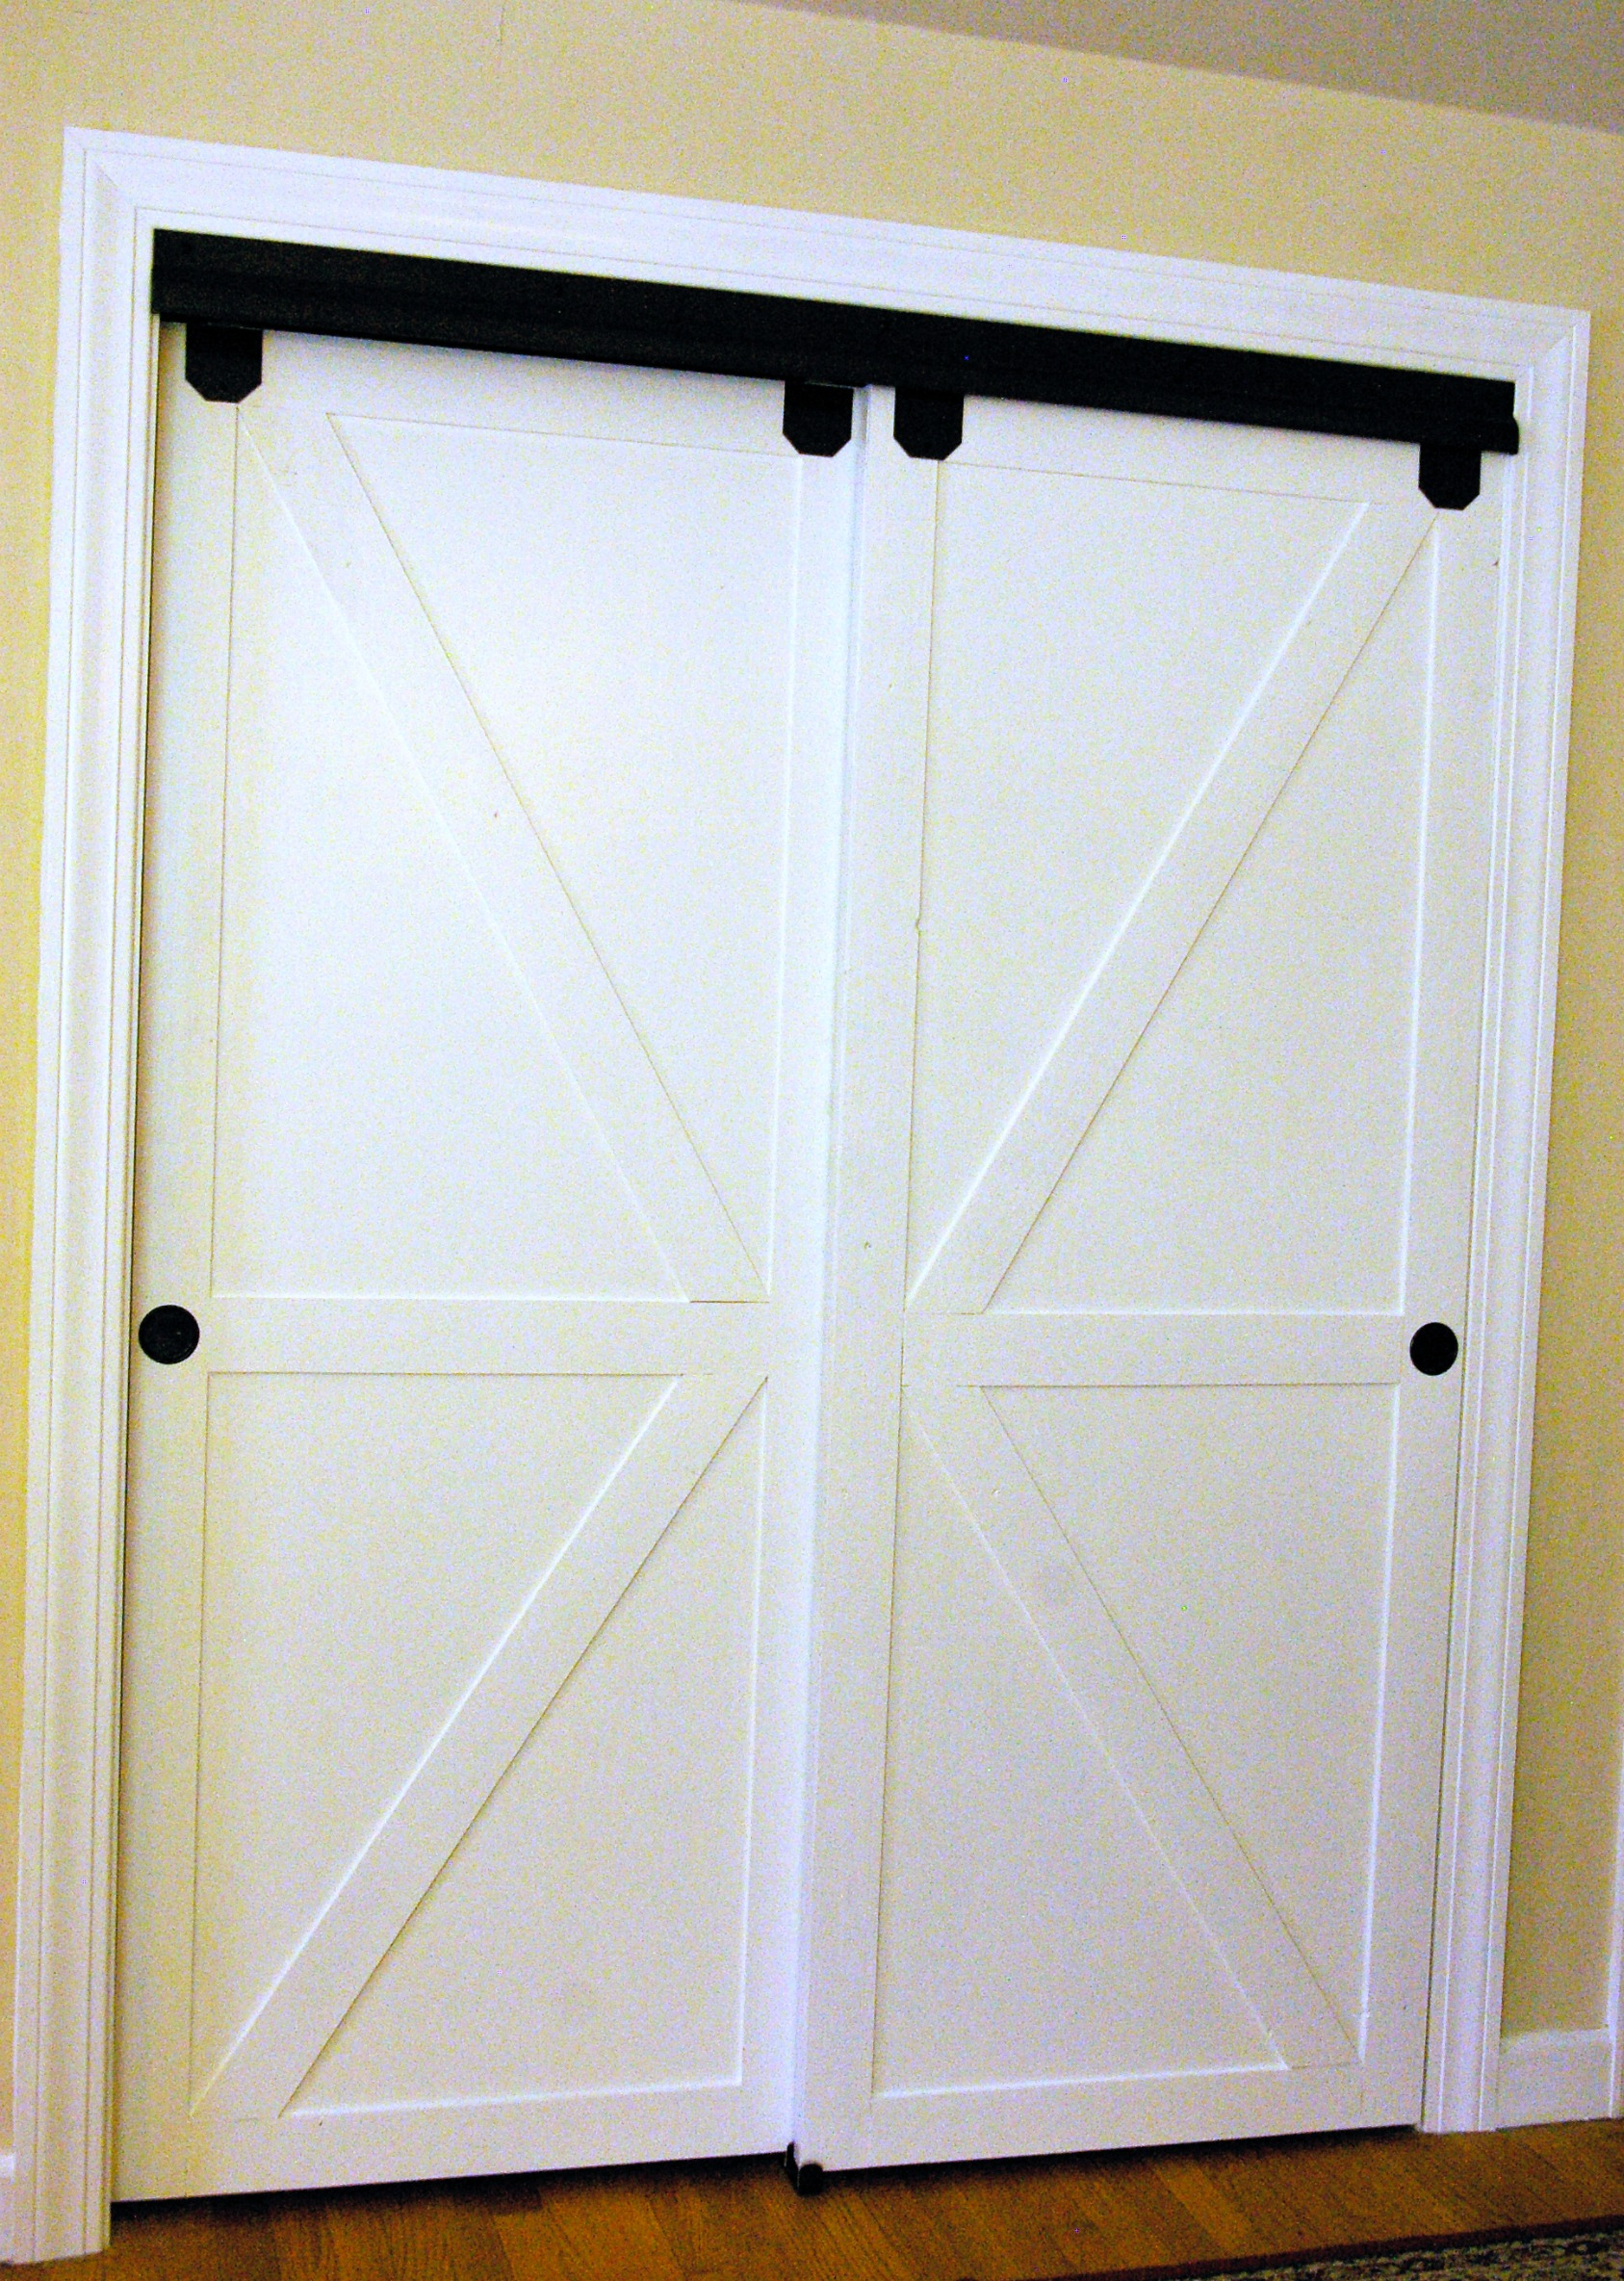 Bypass Barn Doors | Barn Doors for Sale | Bypass Sliding Barn Doors